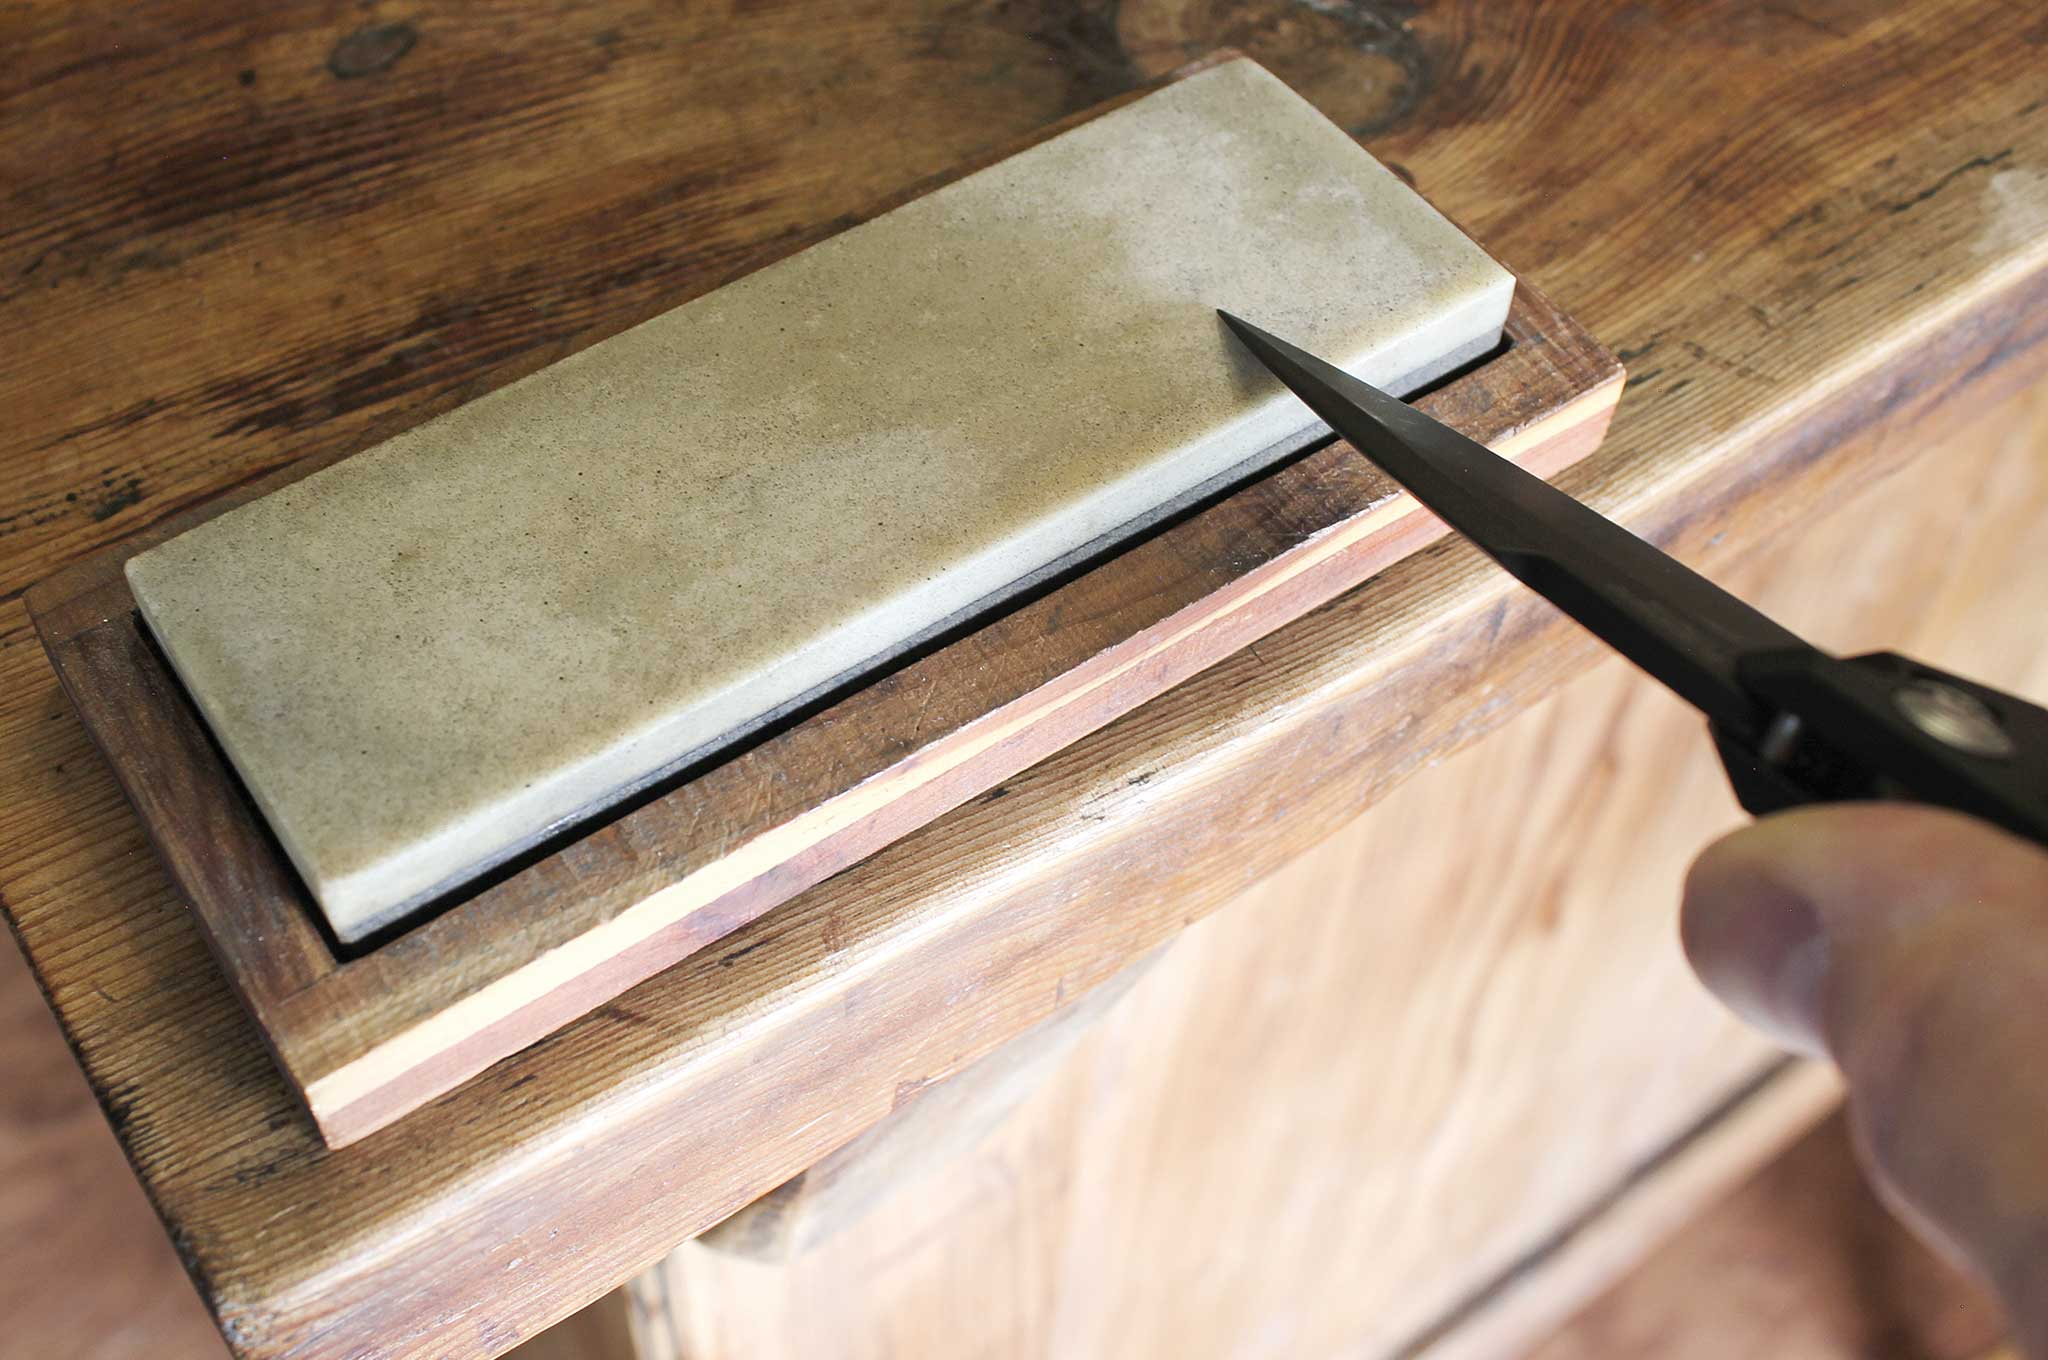 If you want to have any hope of sharpening a knife on an improvised abrasive, first learn how to do it with a traditional flat stone. After determining the proper angle, start with the heel of the edge closest to the handle and draw the entire edge across the stone as if trying to slice off a thin layer. Repeat on the other side and keep going until you've achieved the desired degree of sharpness.